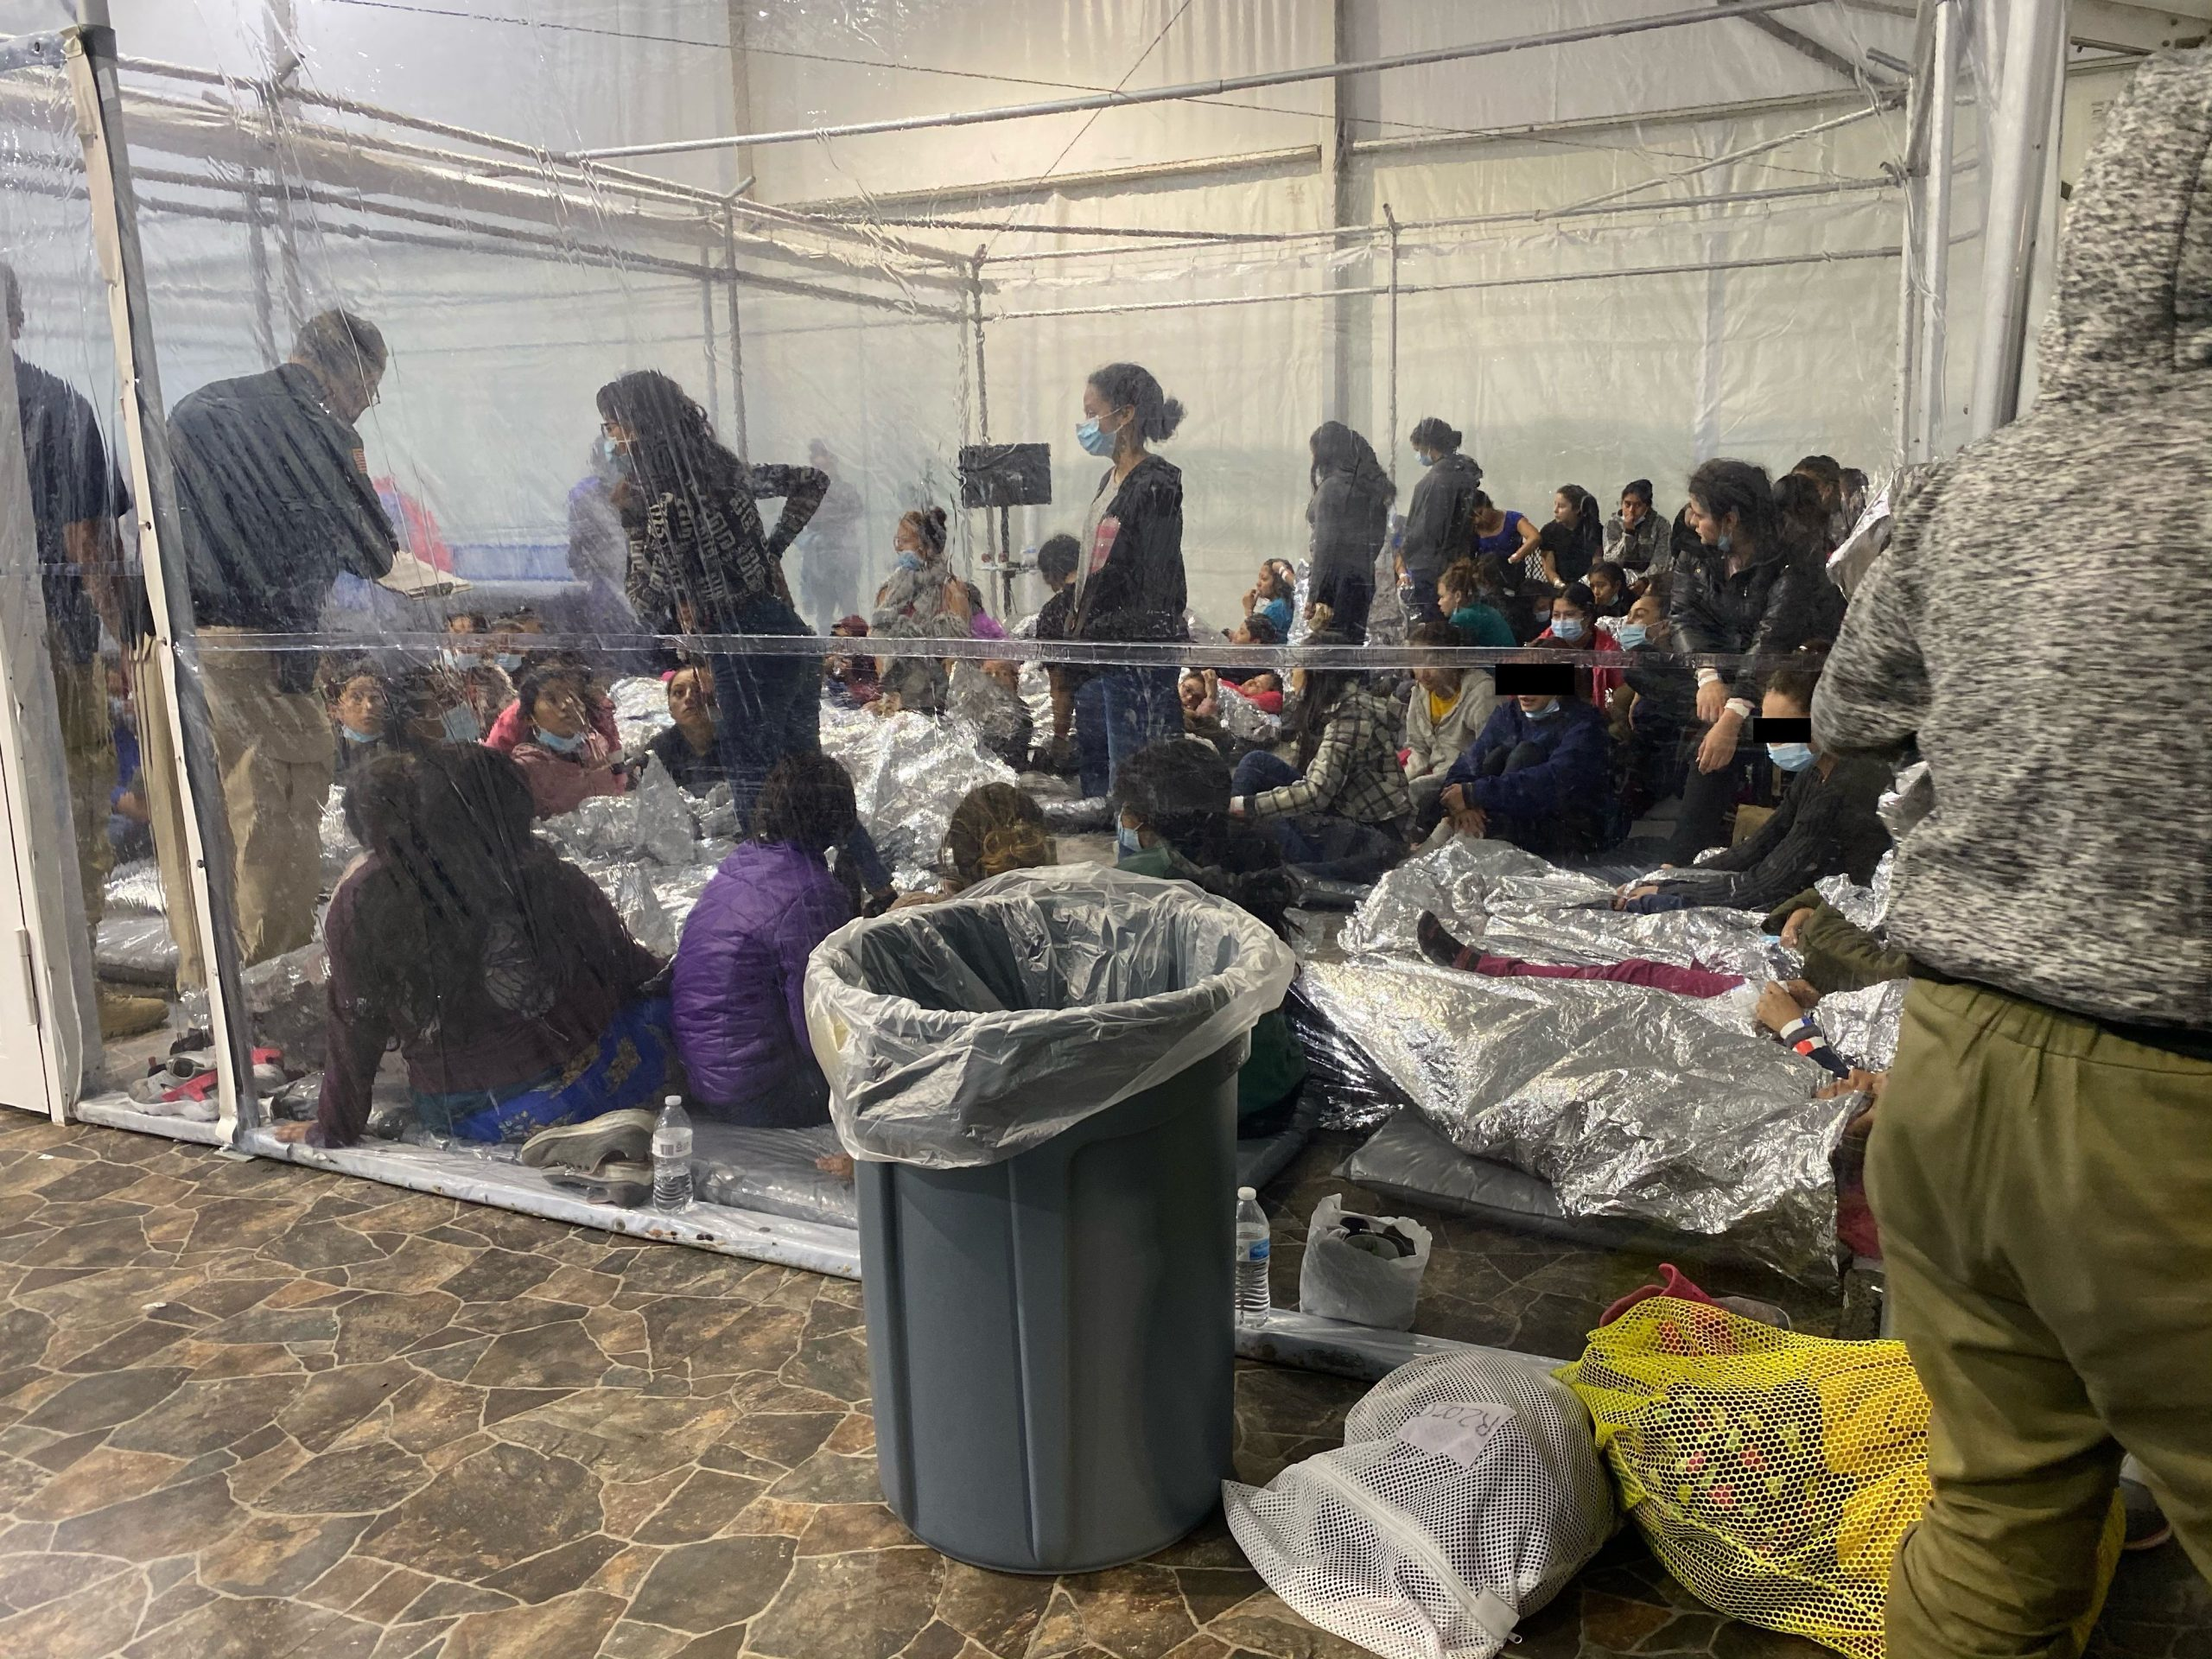 Saturday, March 20, 2021 / Sunday, March 21, 2021. Undocumented immigrants in a concentration camp in Donna, Texas; United States of America. President Joe Biden and vice president Kamala Harris have thousands of children in cages. Photo: Representative Henry Cuellar (Democrat Texas).